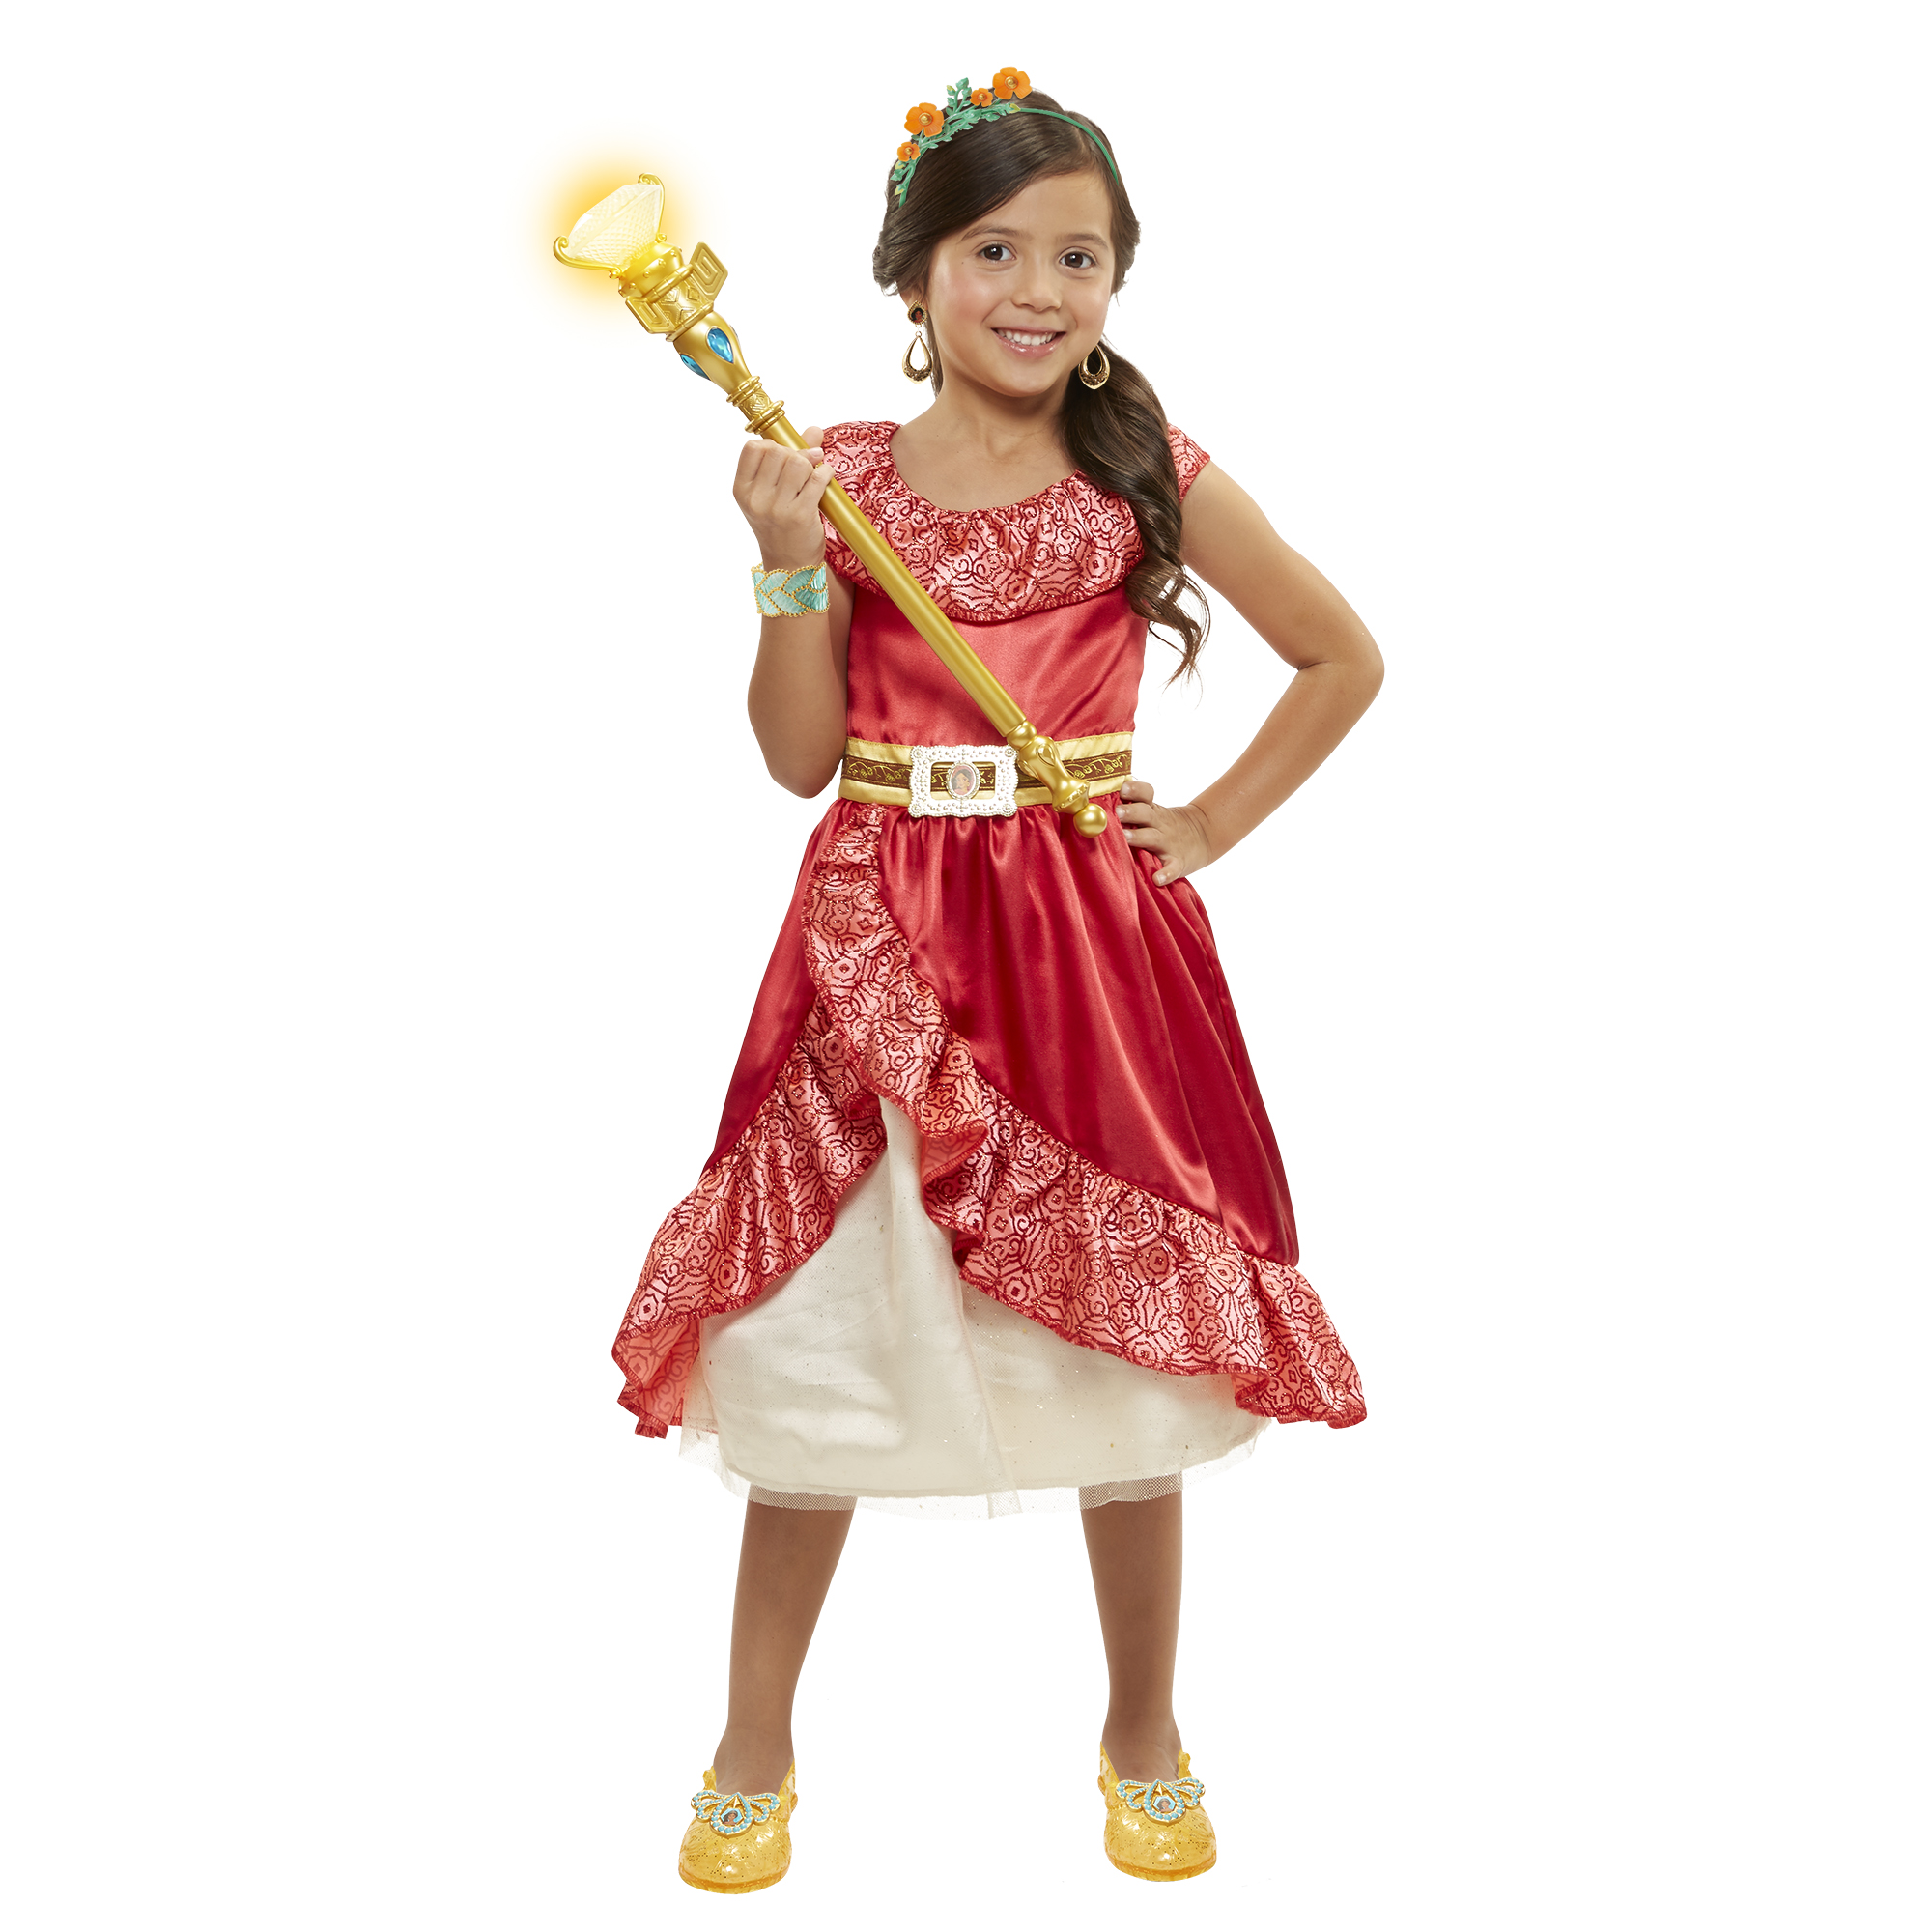 Magical Scepter of Light Disney Elena of Avalor